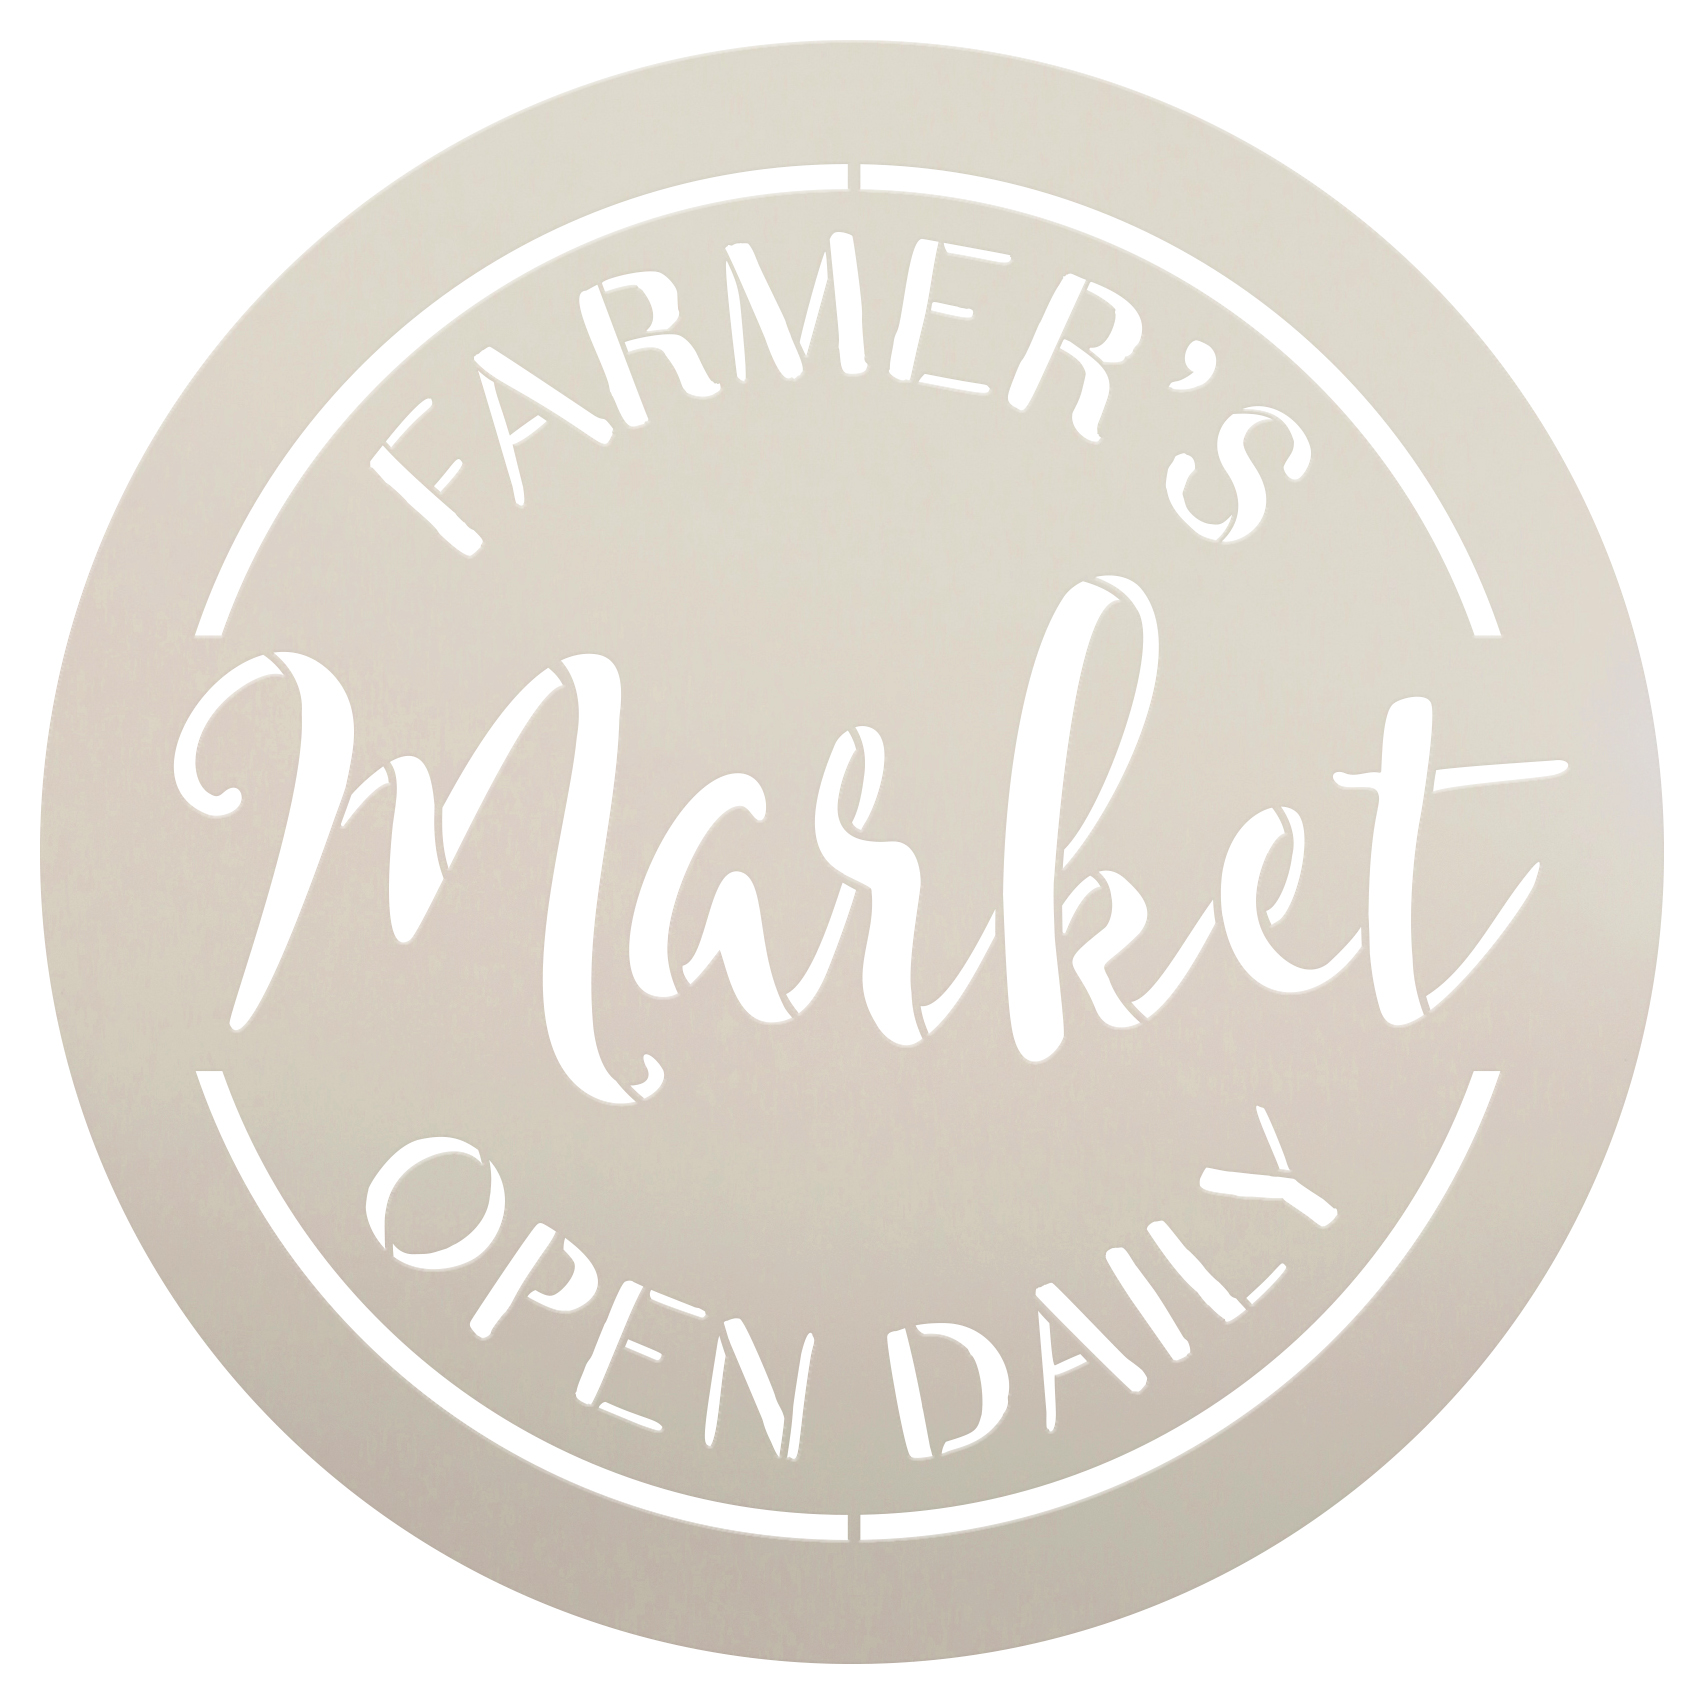 """Farmer's Market Open Daily Stencil by StudioR12 